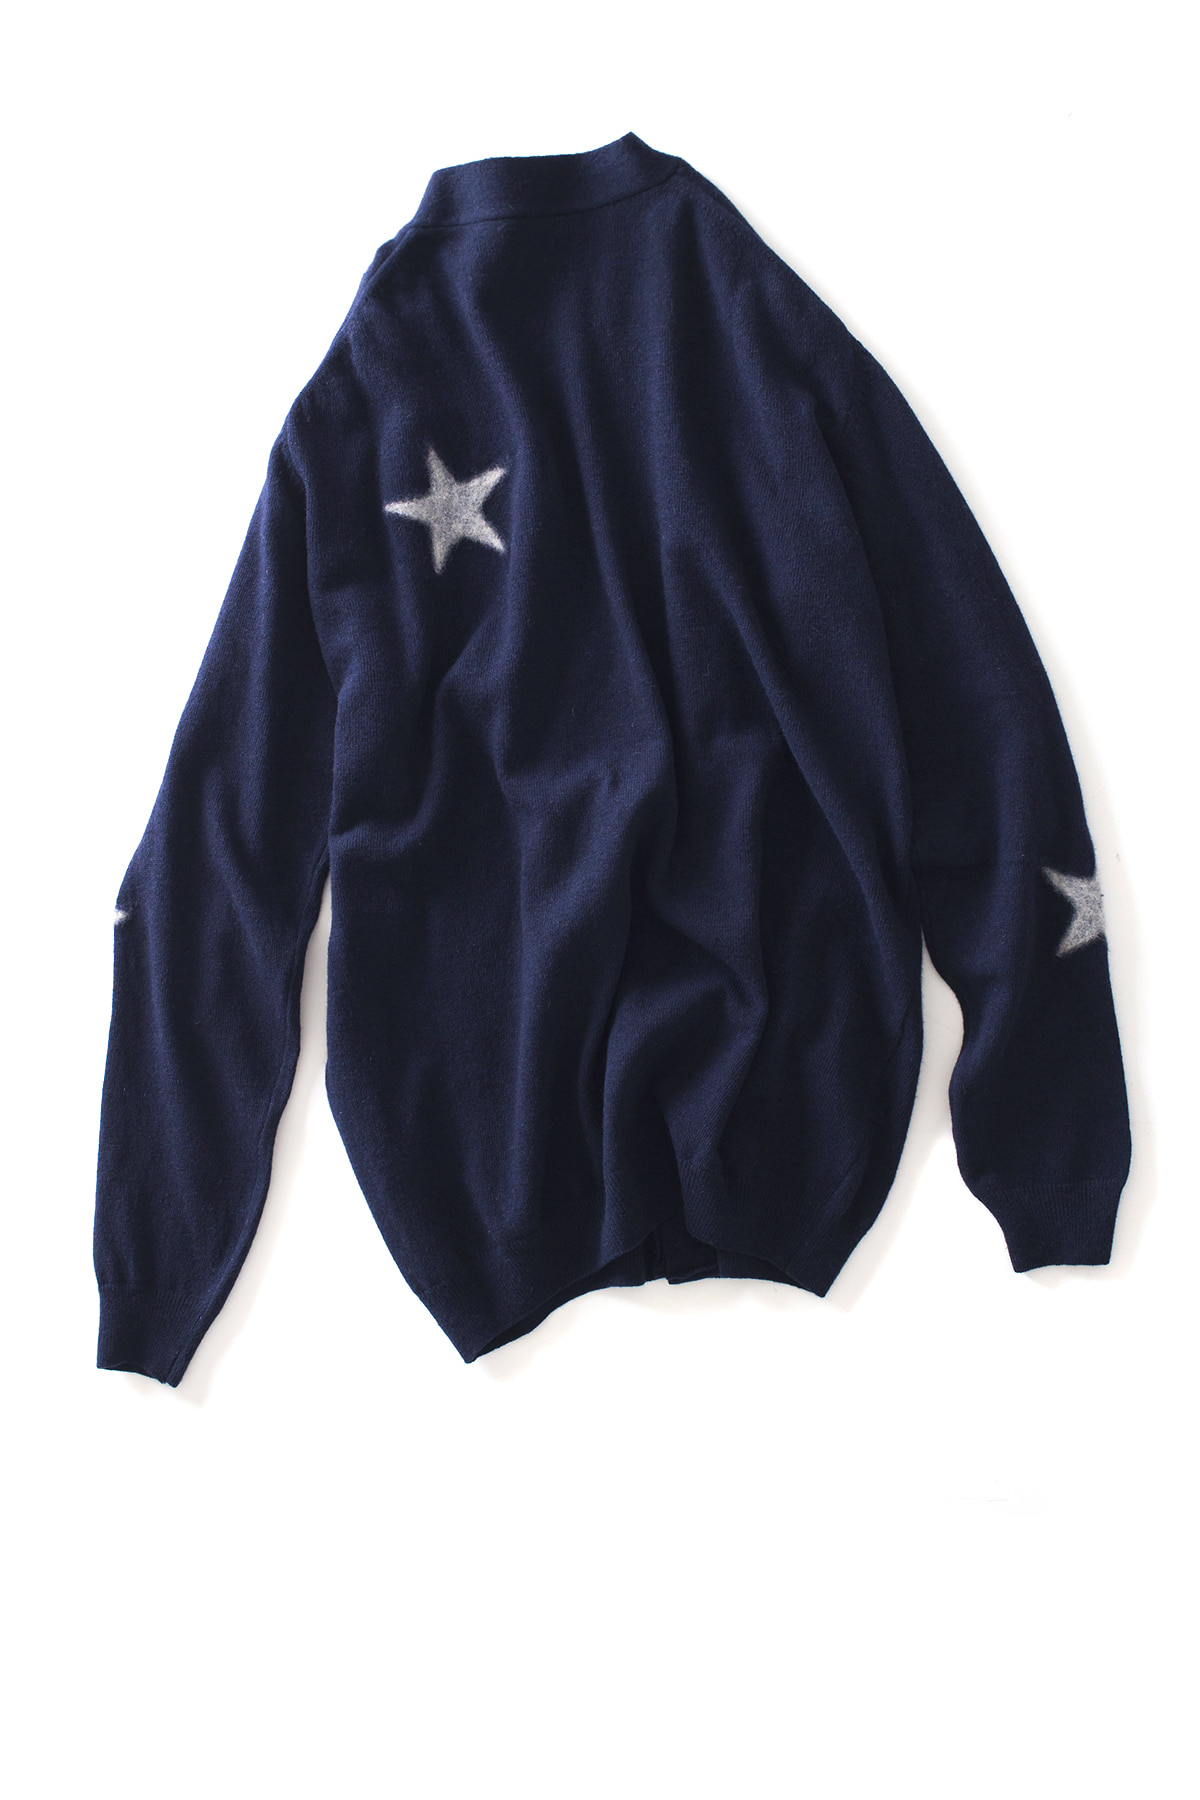 THE EDITOR : Star Knit Cardigan (Navy)